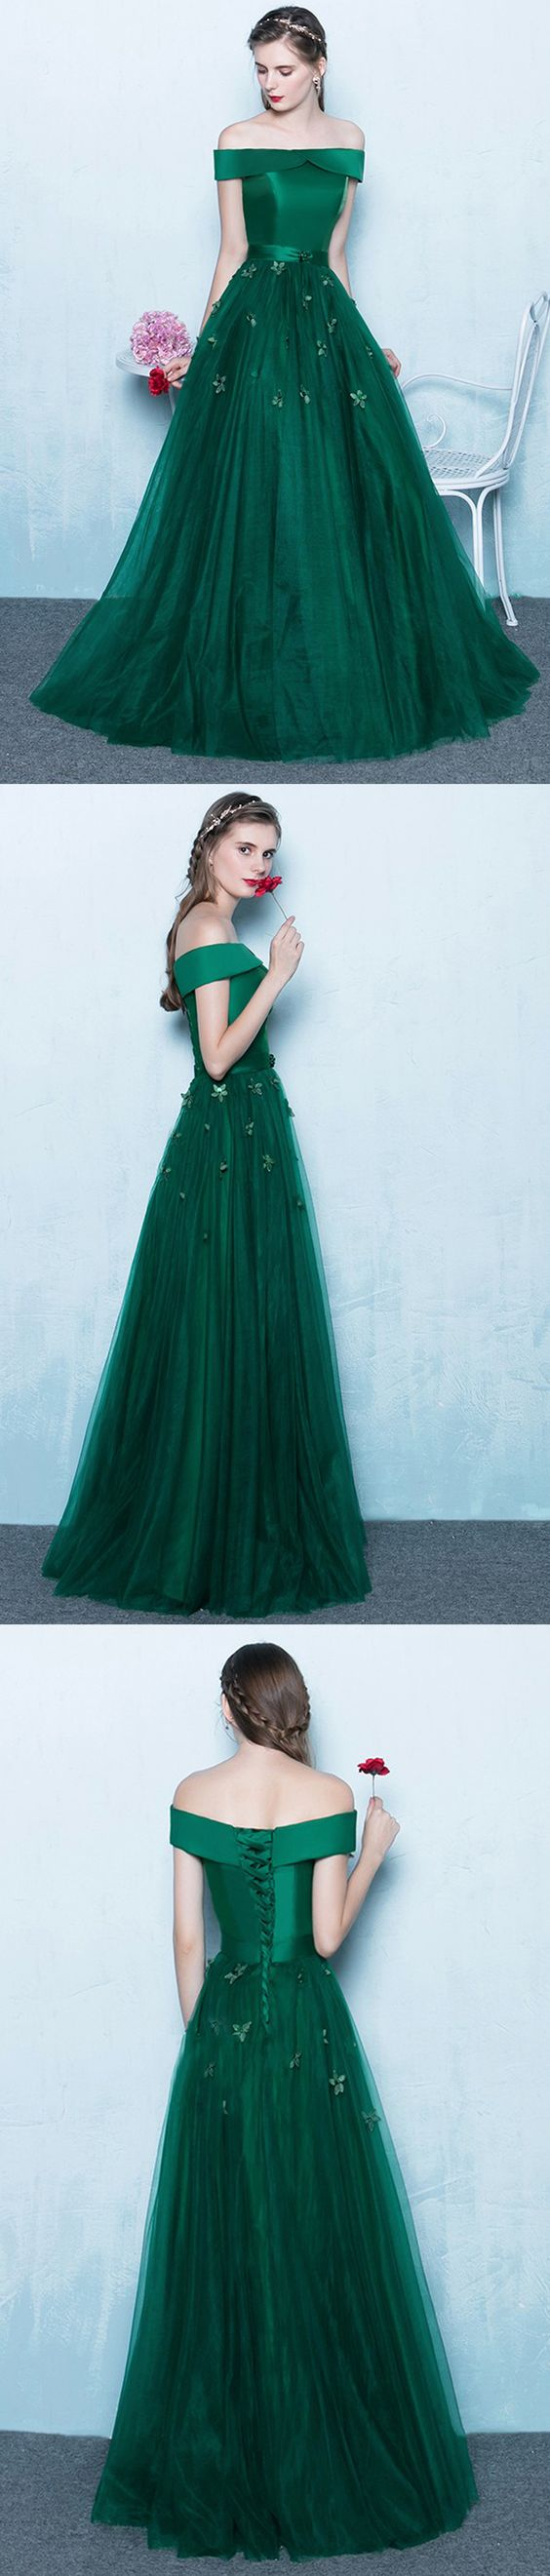 Green Prom Dress Long 2018,Prom Dresses,Evening Gown, Graduation ...